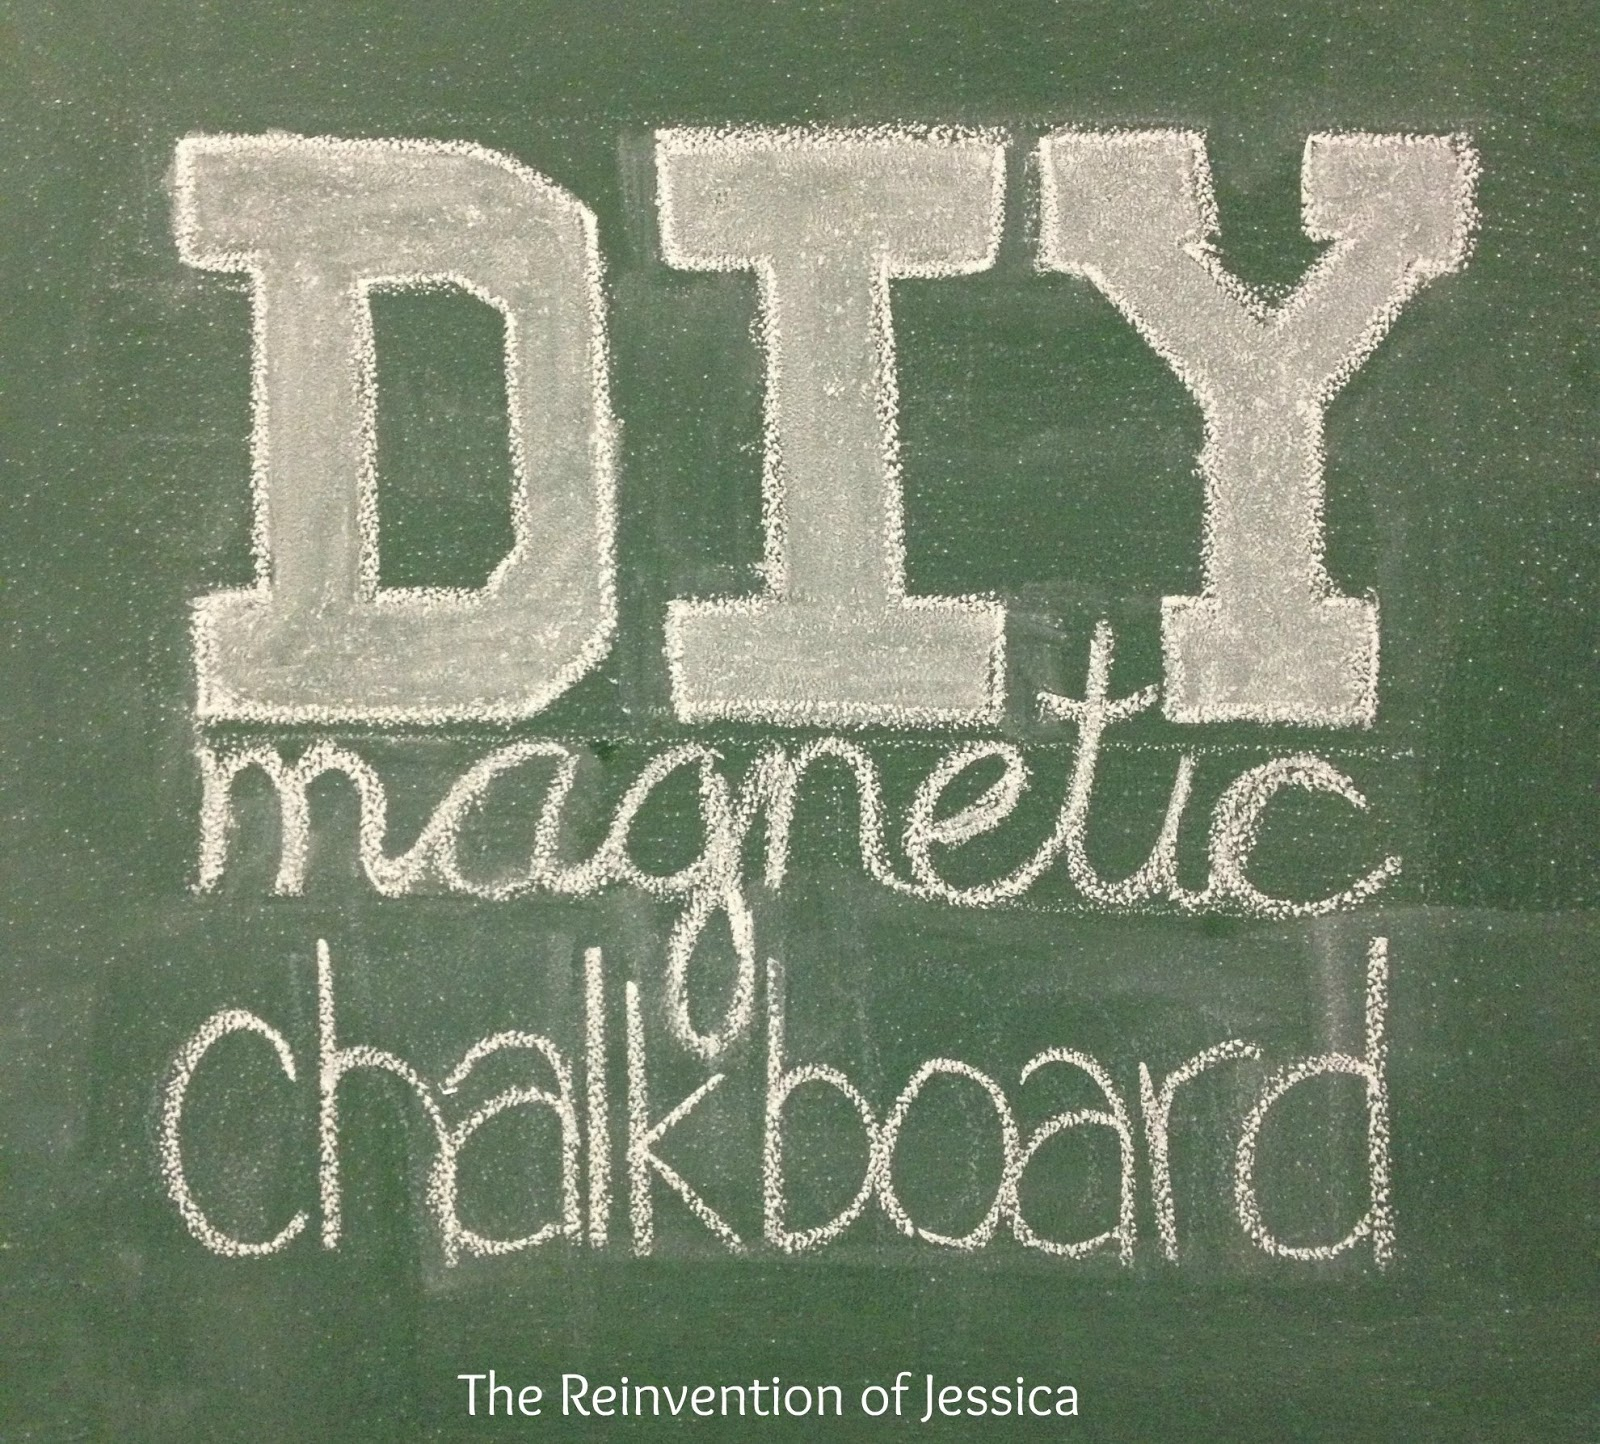 DIY Magnetic Chalkboard - The Reinvention of Jessica